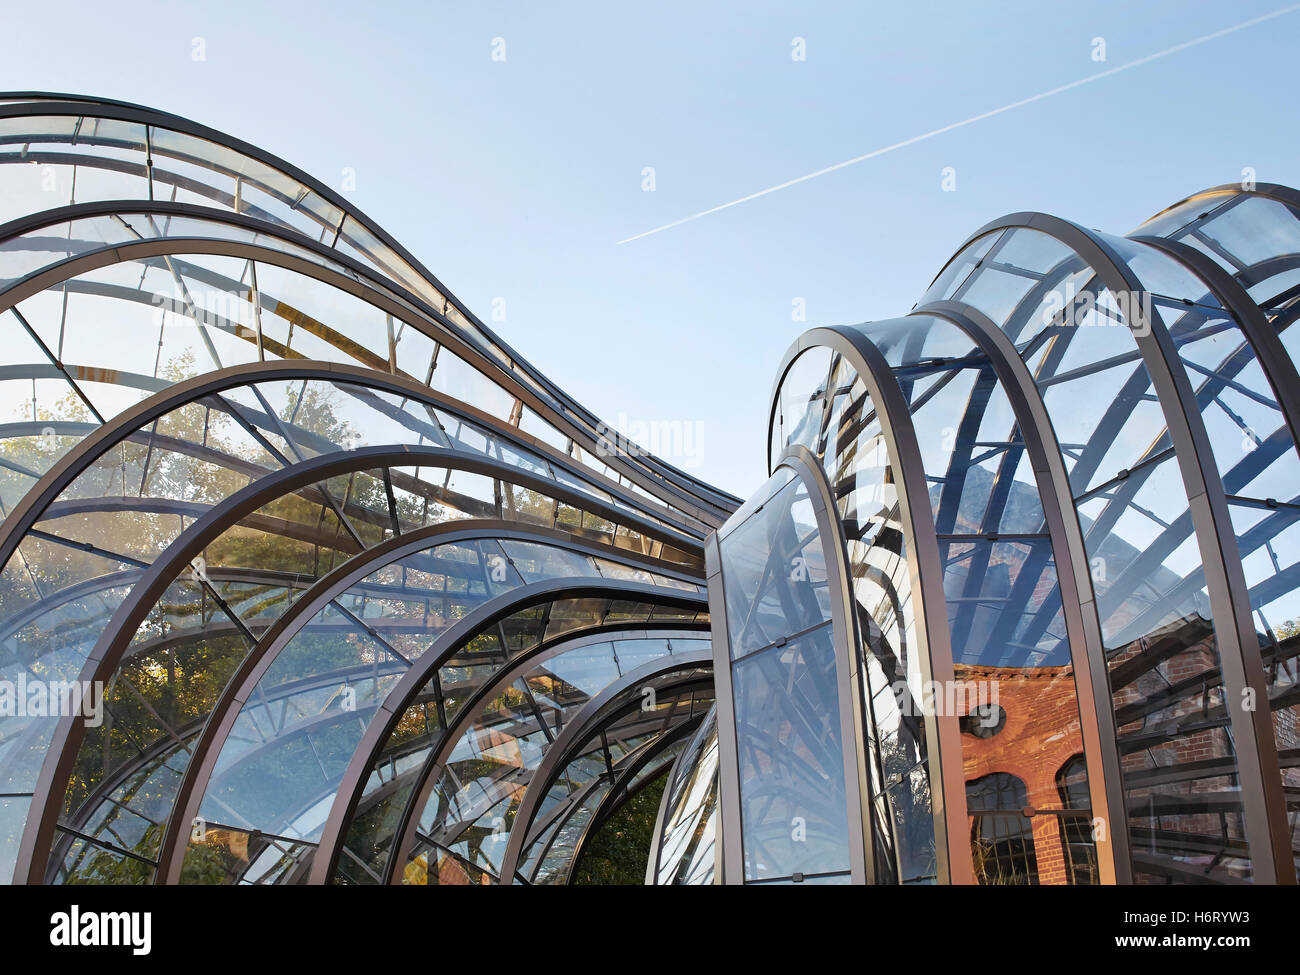 Curved Architecture Detail Of Curved Greenhouse Frame Bombay Sapphire Distillery